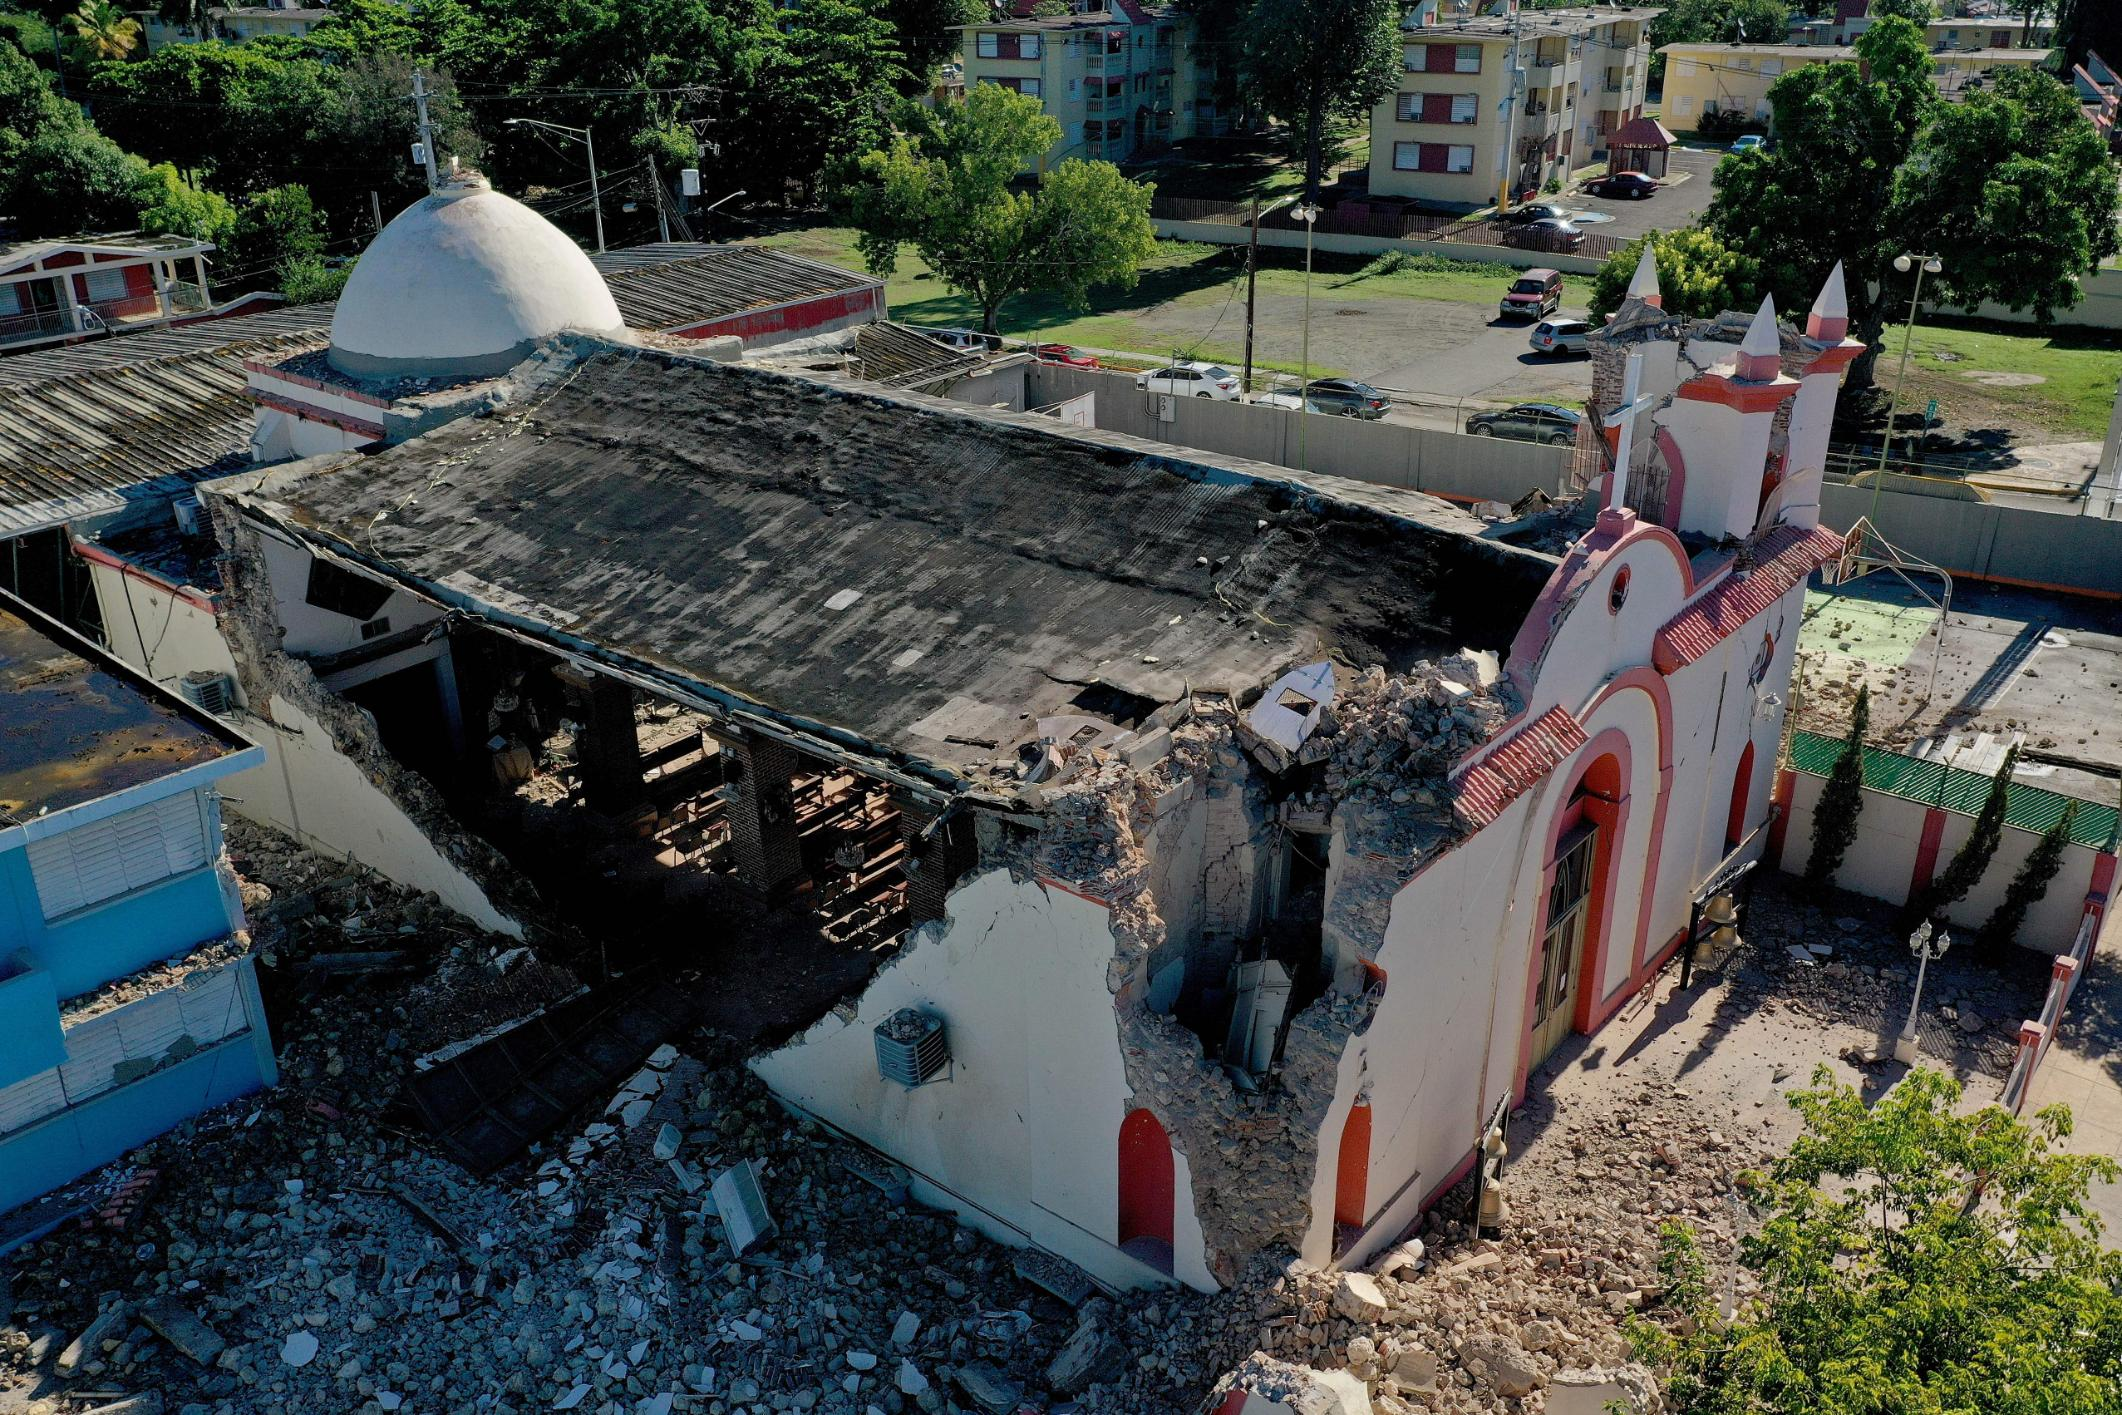 The Inmaculada Concepcion church, built in 1841, is seen partially collapsed after an earthquake hit the island in Guayanilla, Puerto Rico on January 7, 2020.